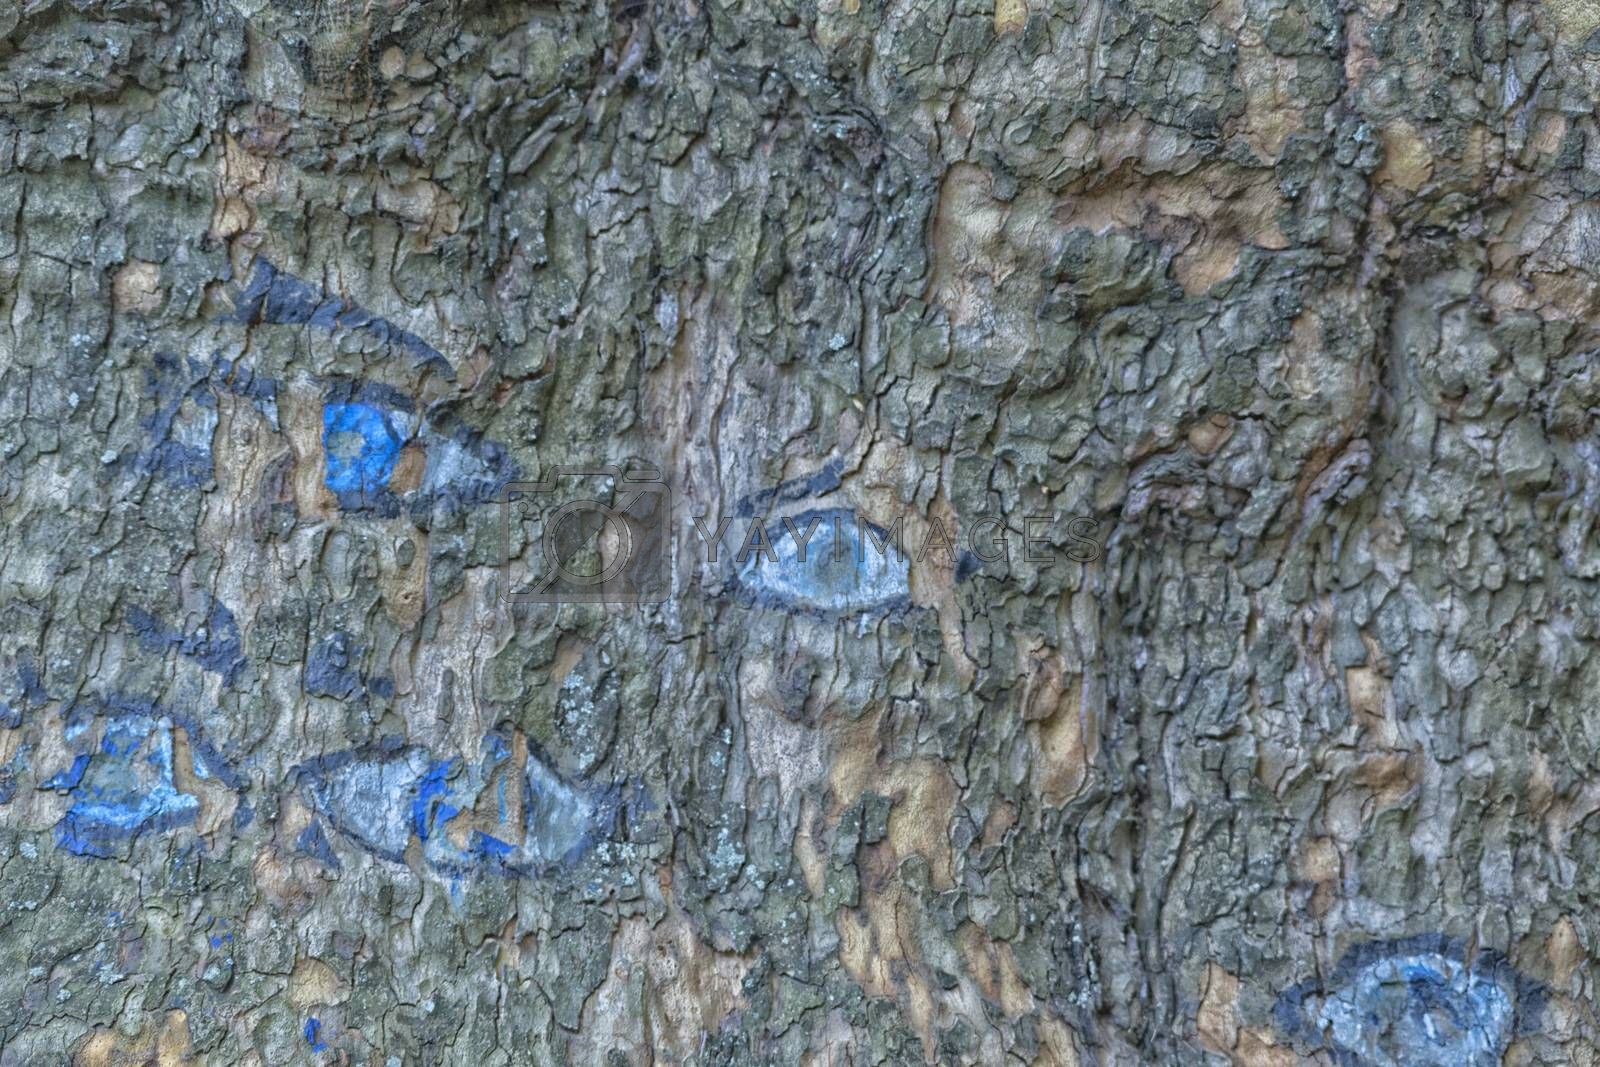 Blue eyes drawn on a tree by paocasa